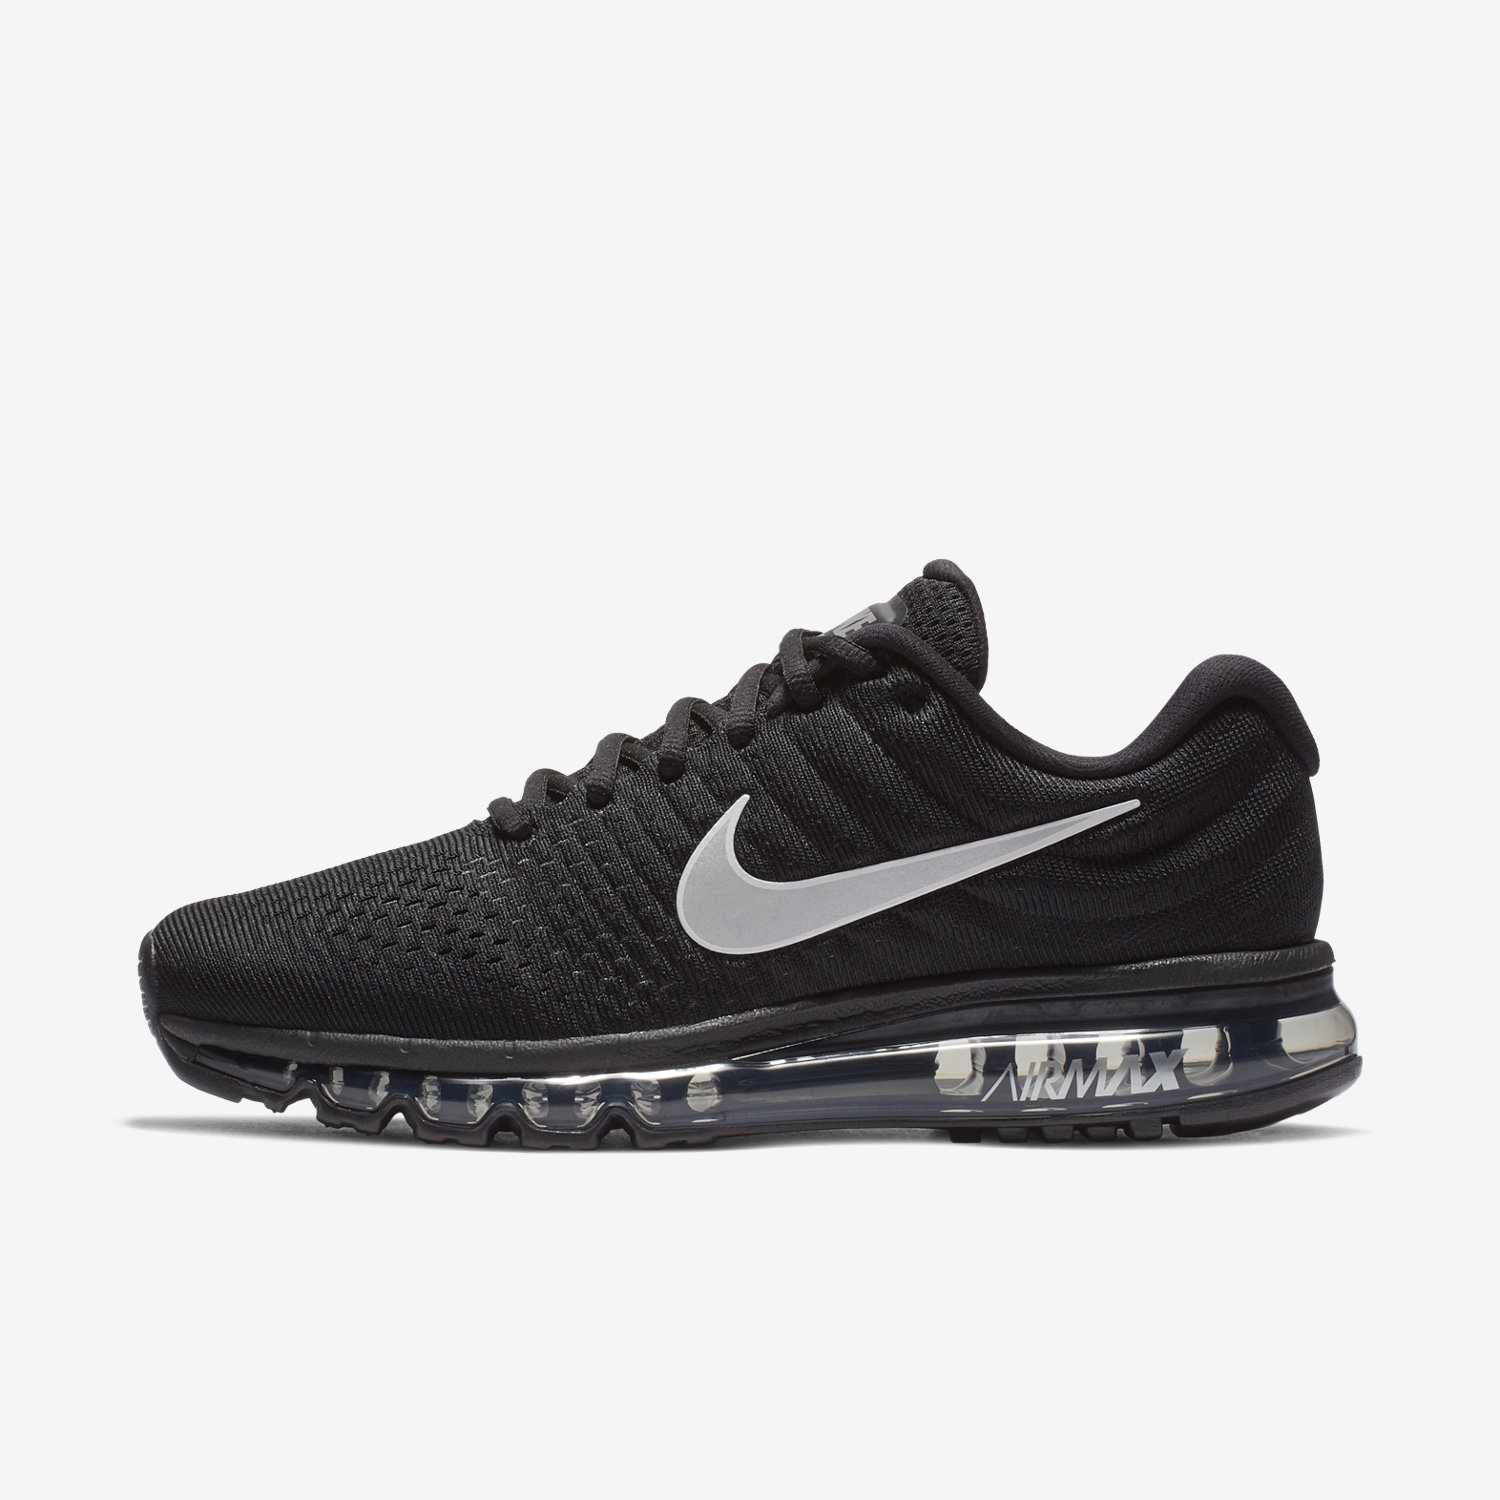 nouvelle chaussure nike air max. Black Bedroom Furniture Sets. Home Design Ideas